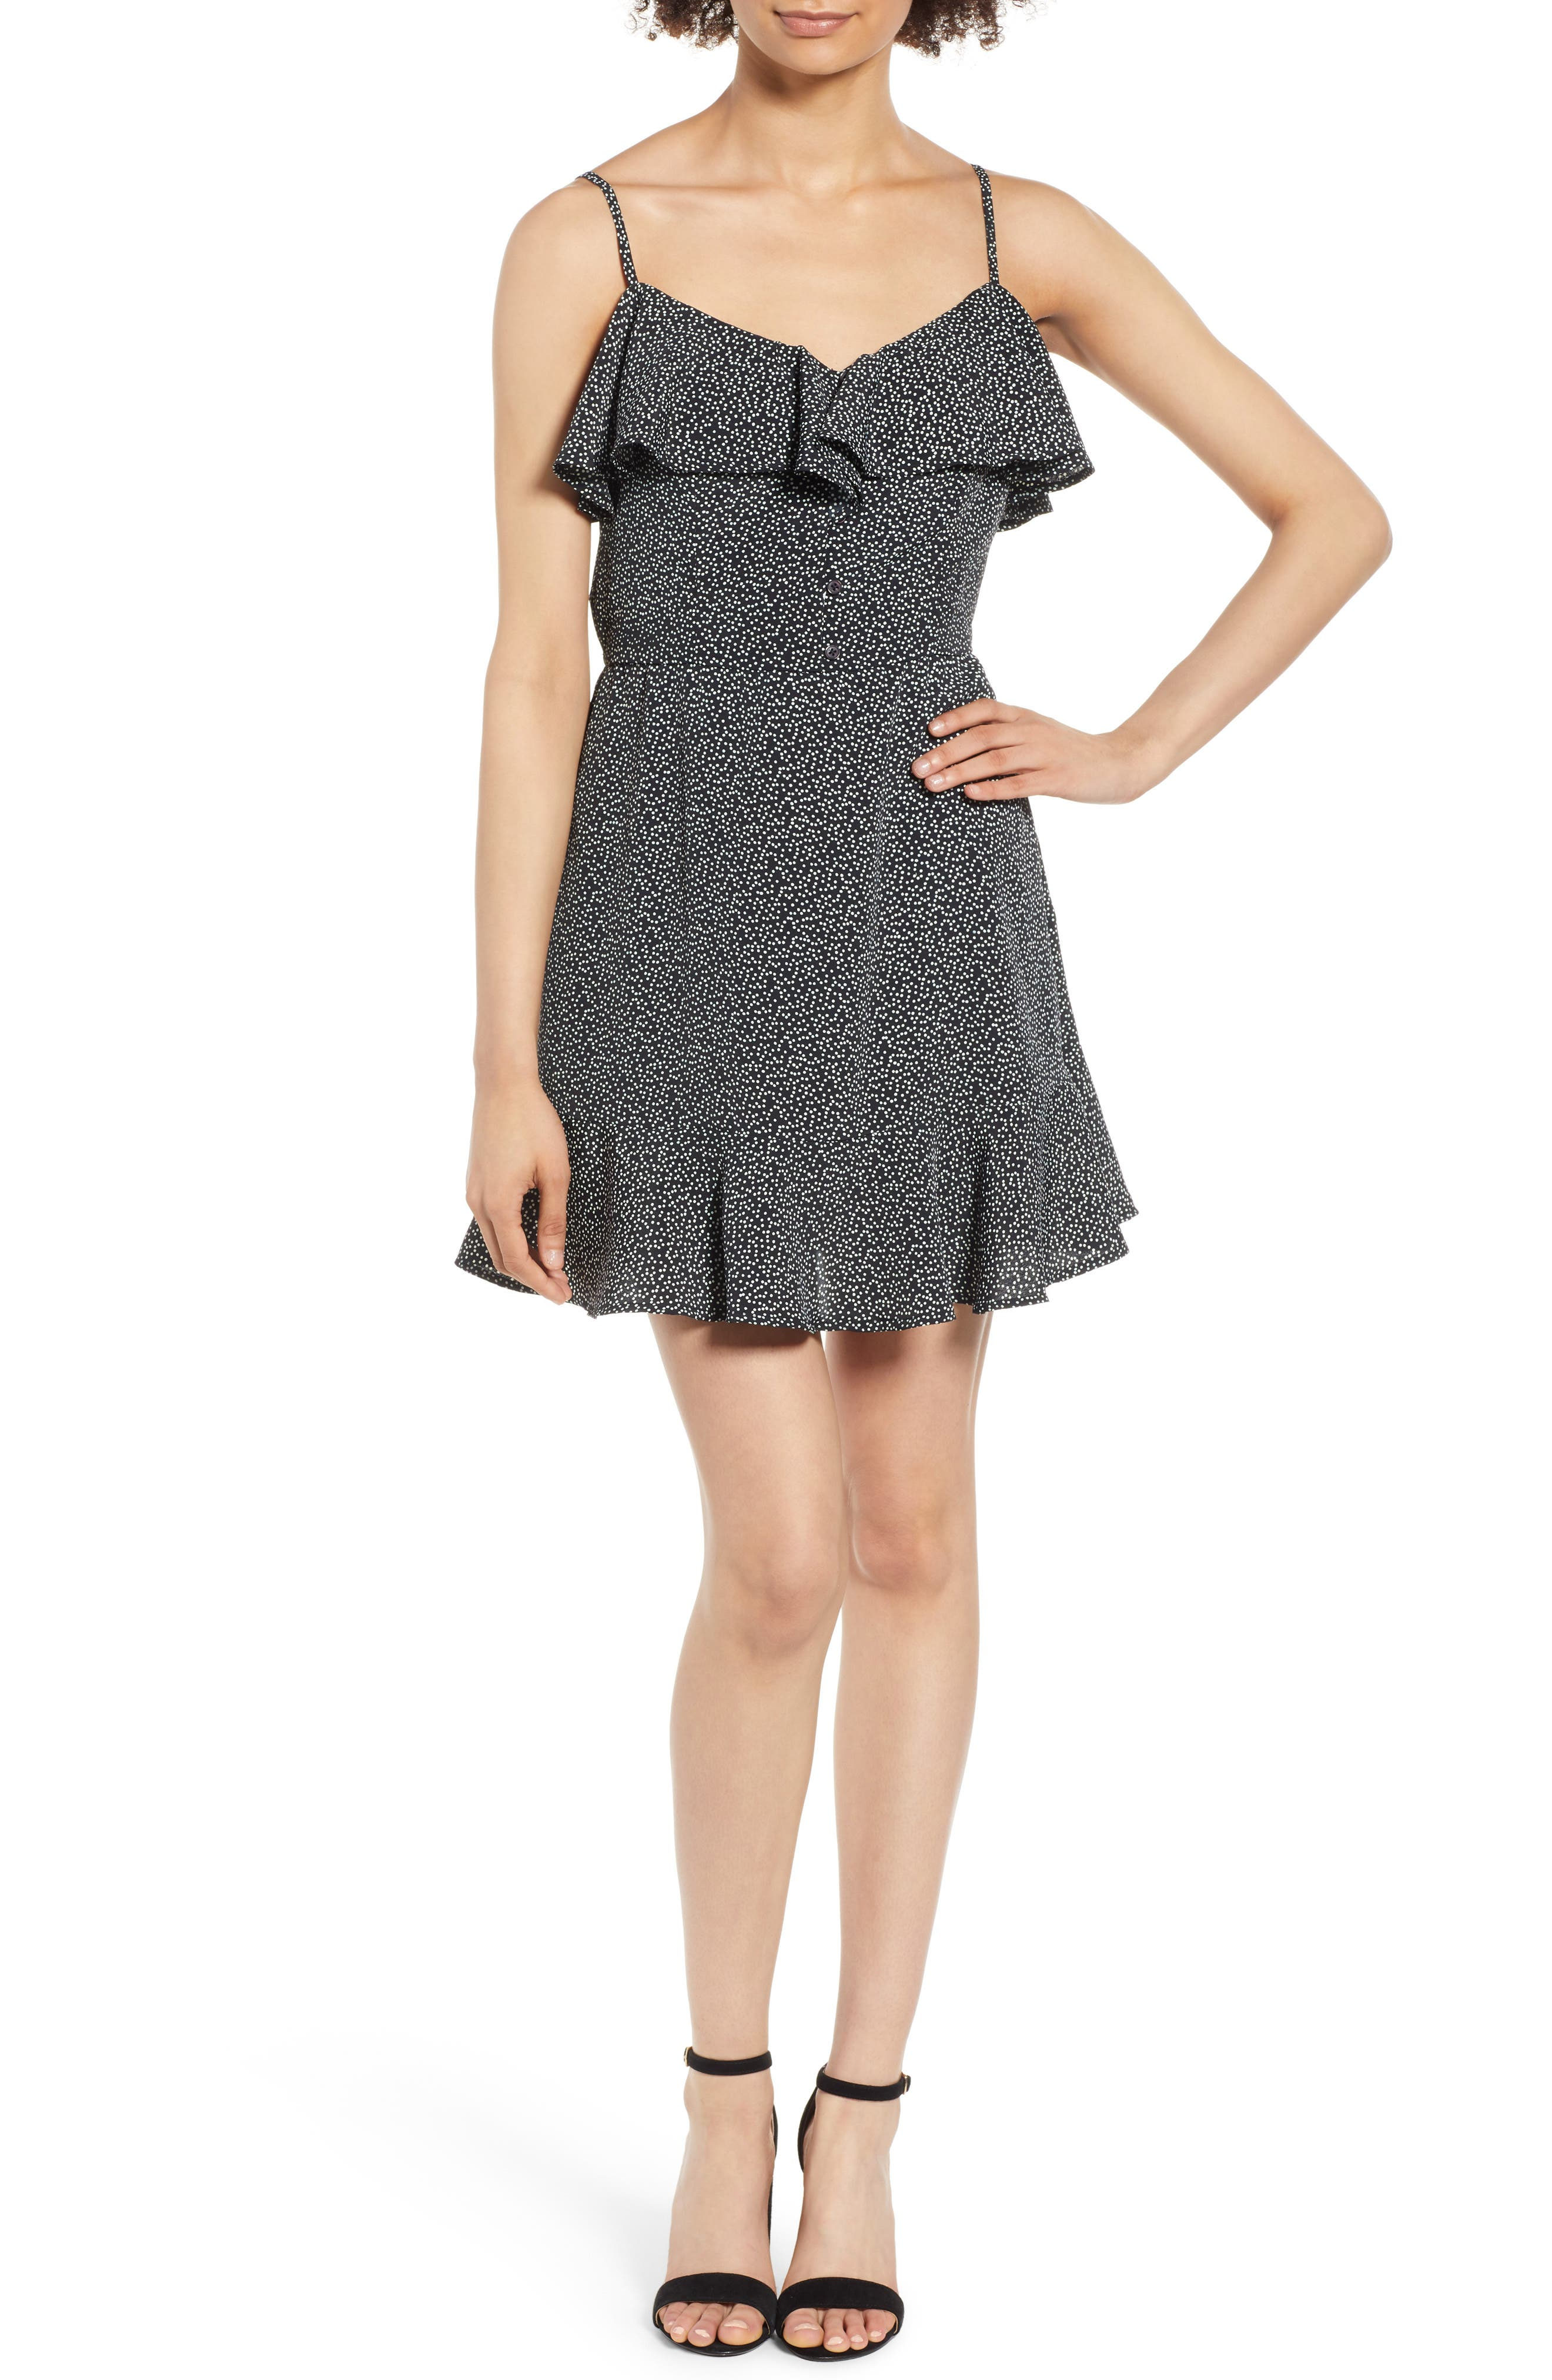 BUTTON FRONT FRILLY DOT DRESS